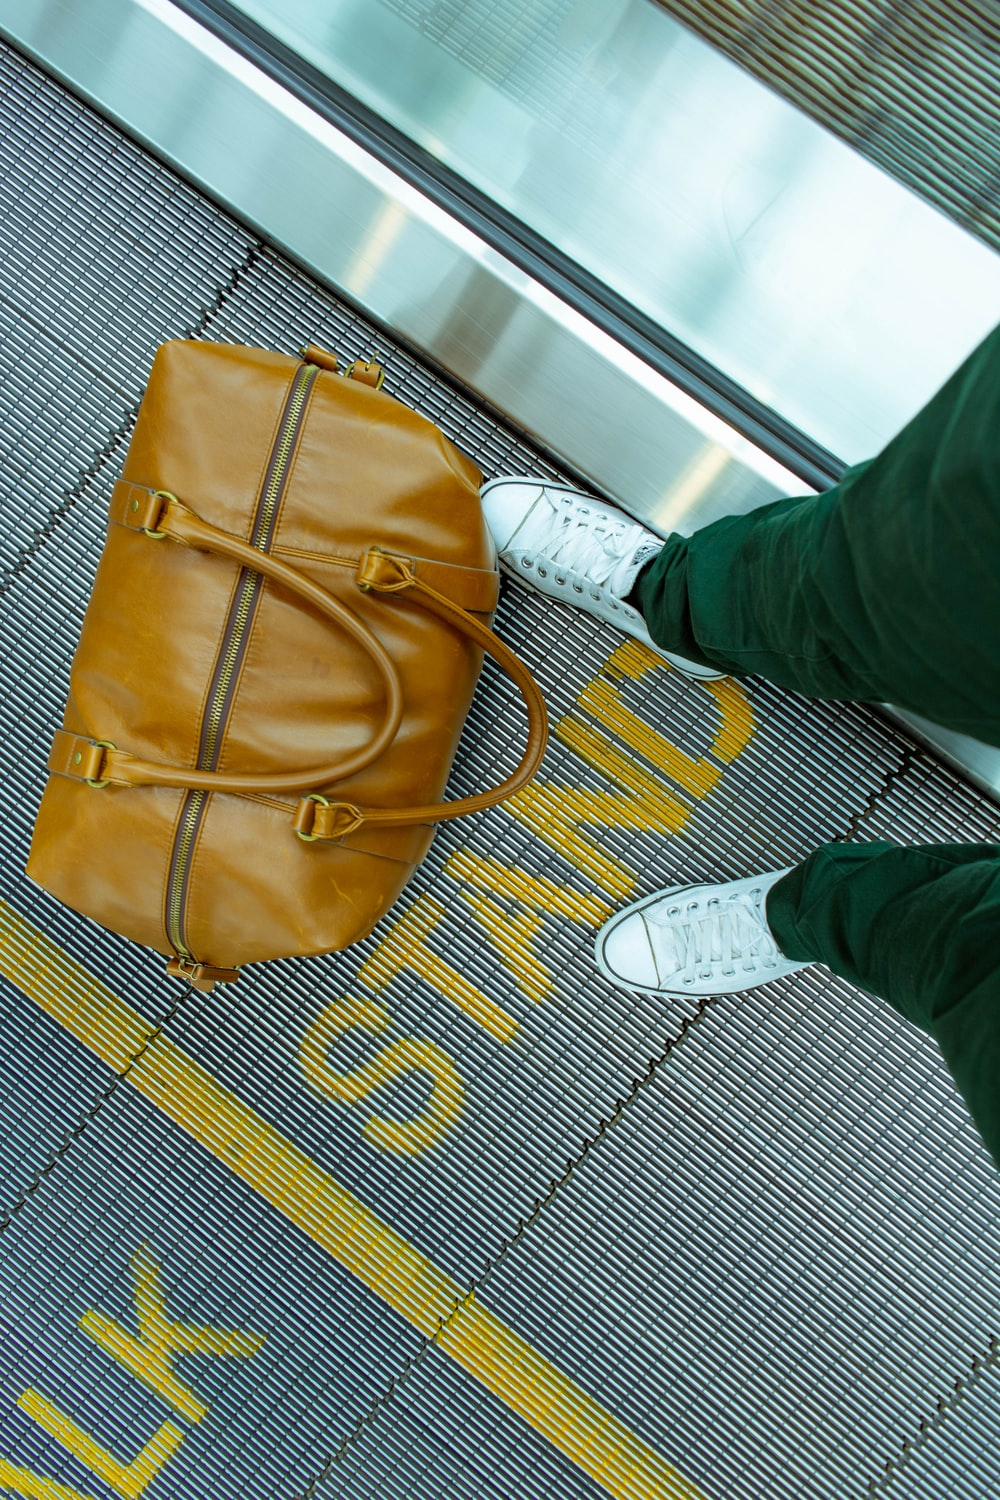 person stranding beside brown leather handbag